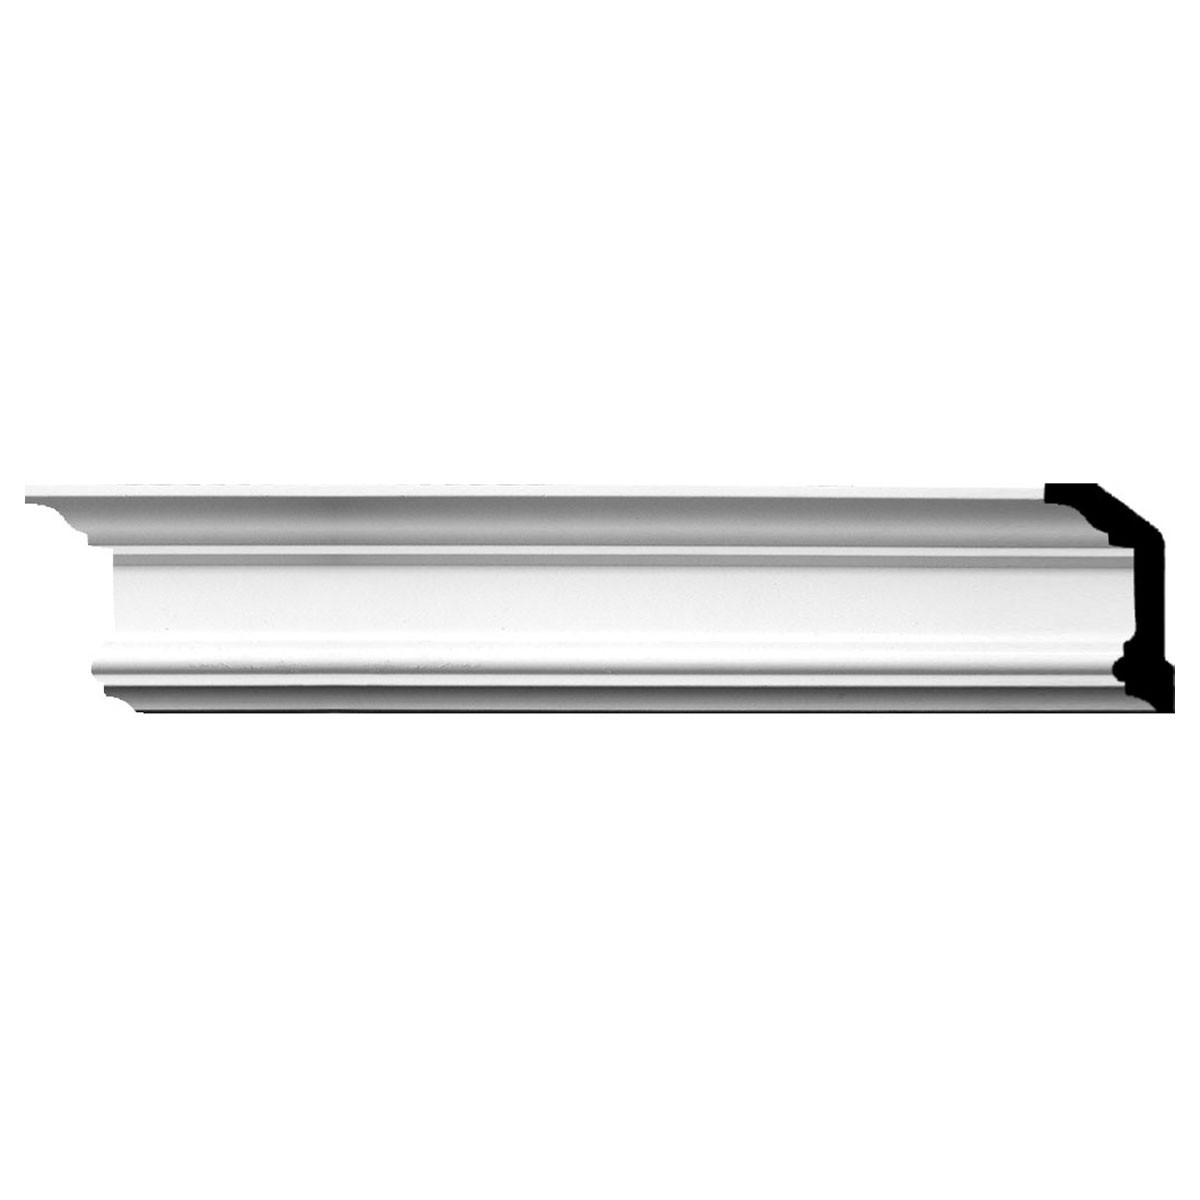 """EM-MLD04X02X04HO - 4""""H x 2 1/4""""P x 4 1/2""""F x 94 1/2""""L Holmdel Traditional Smooth Crown Moulding"""